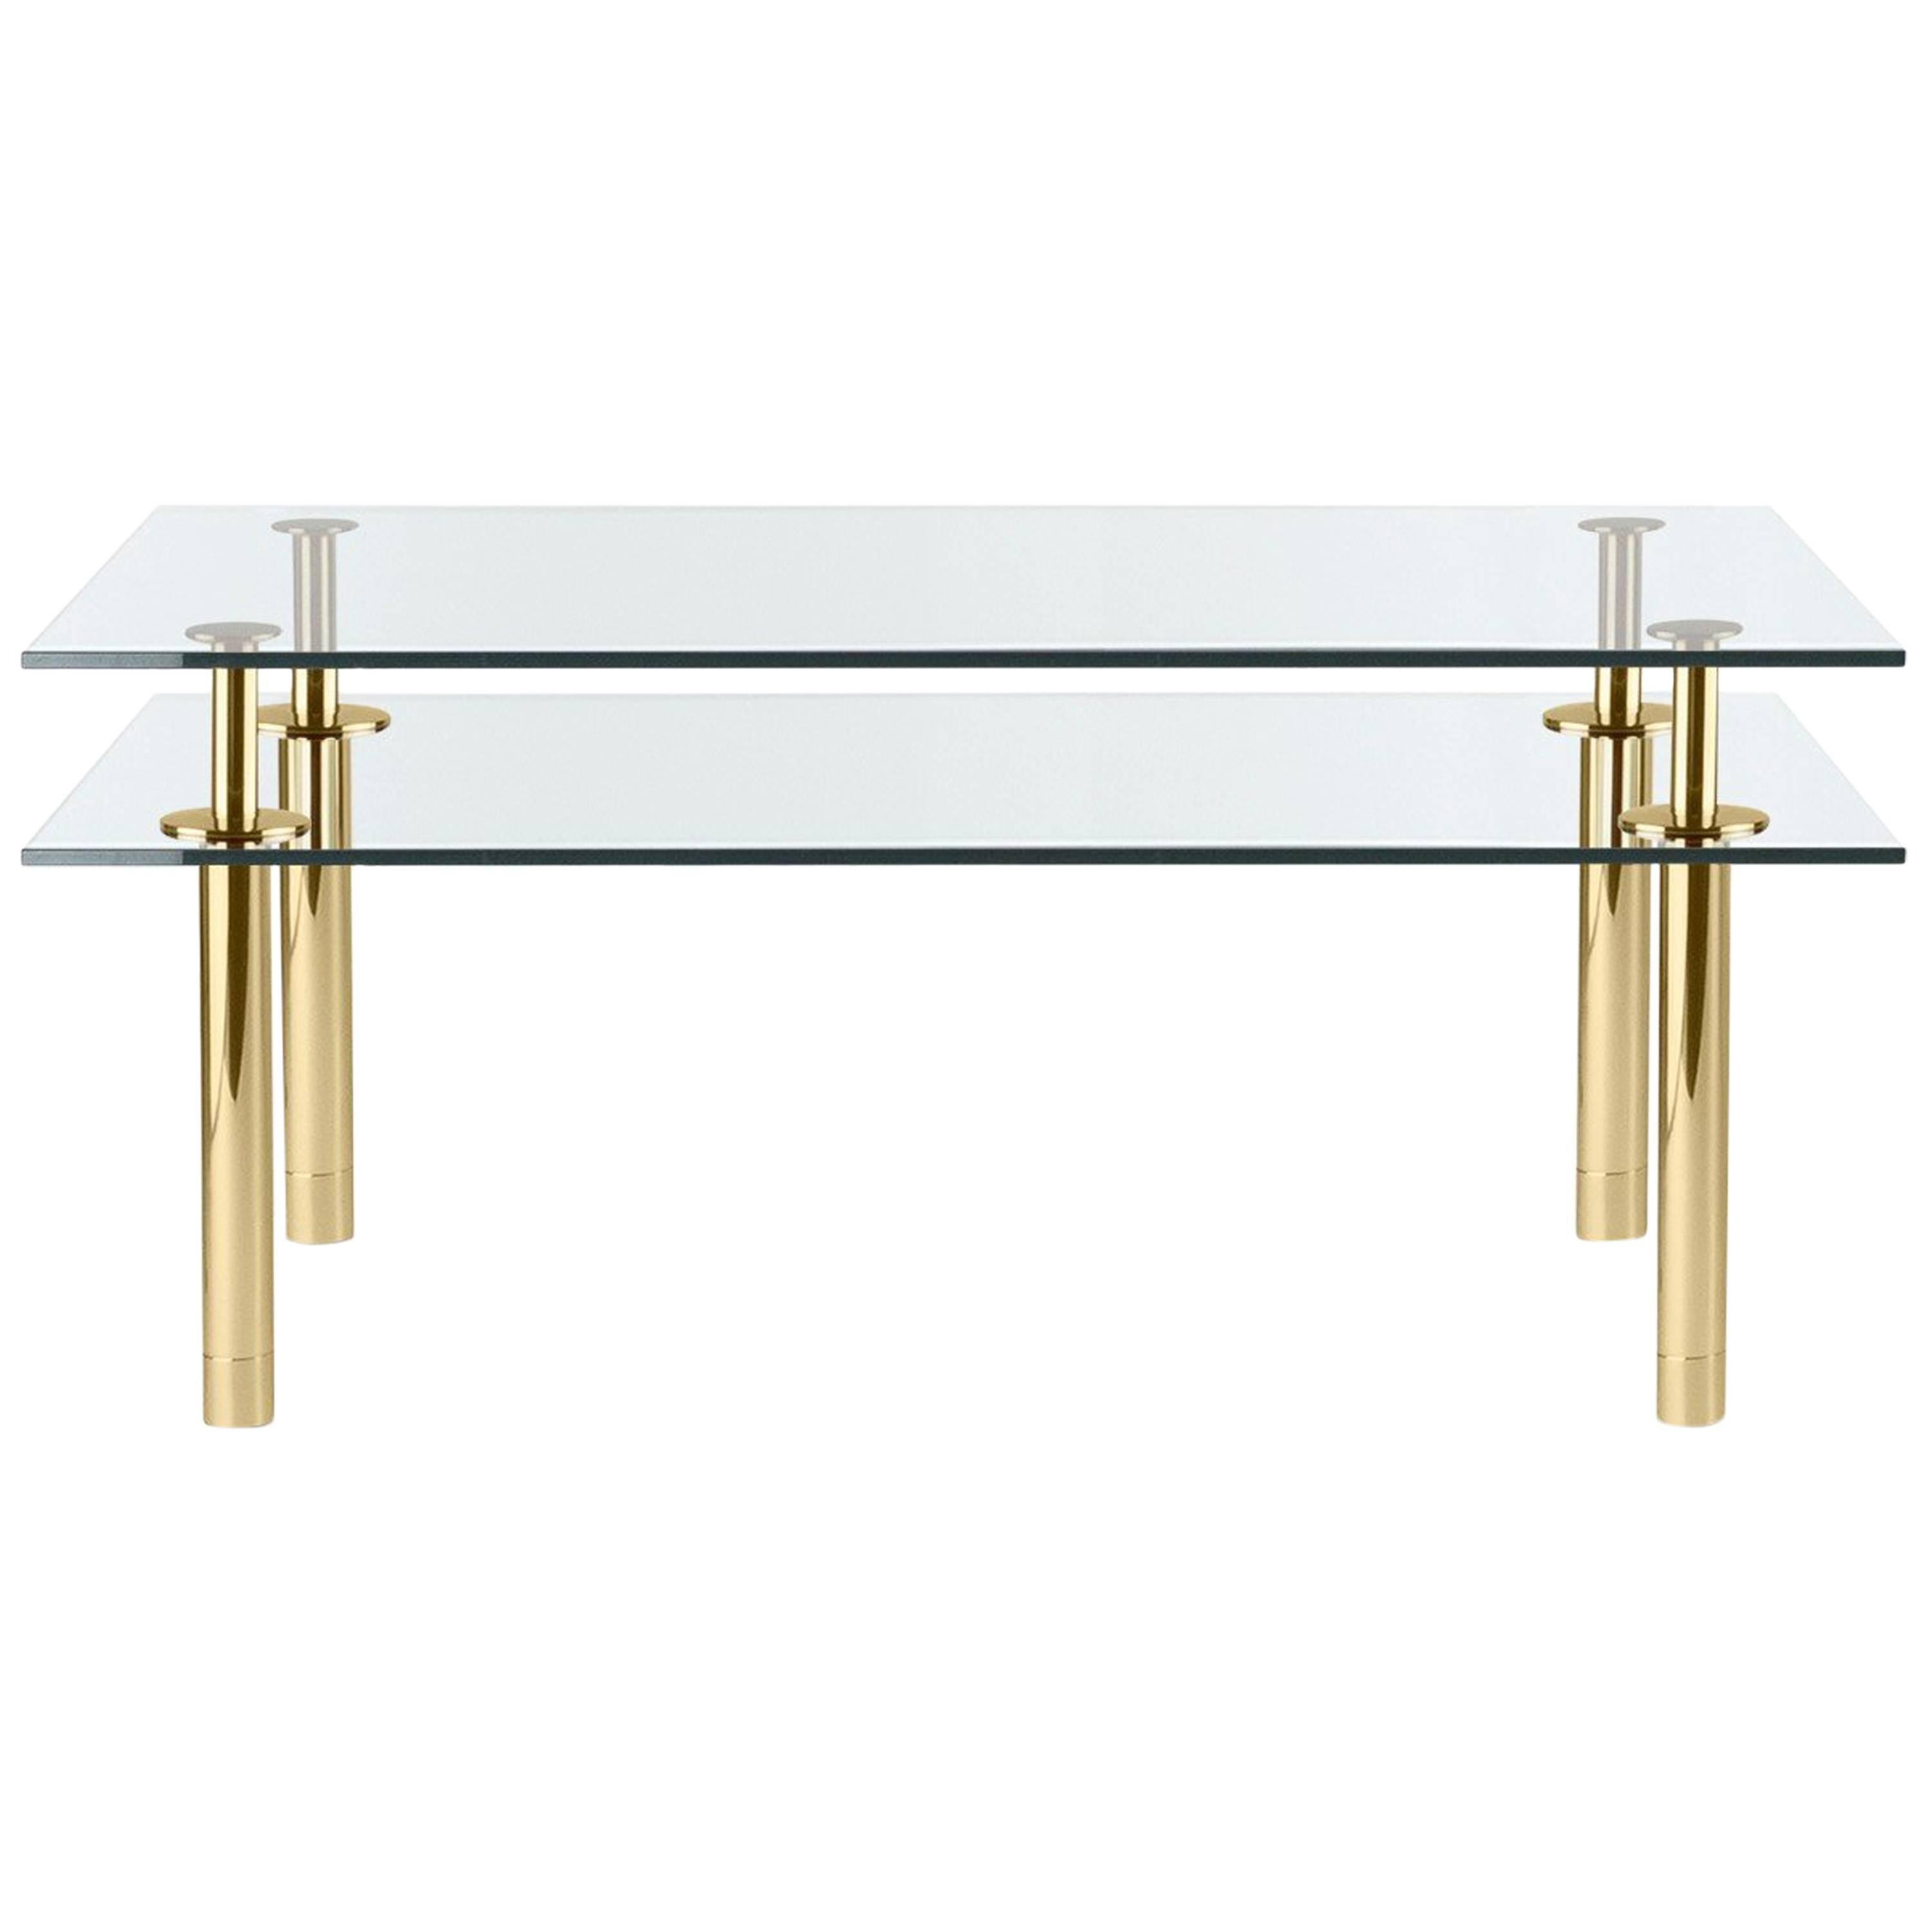 Ghidini 1961 Legs Small Rectangular Table in Crystal and Polished Brass